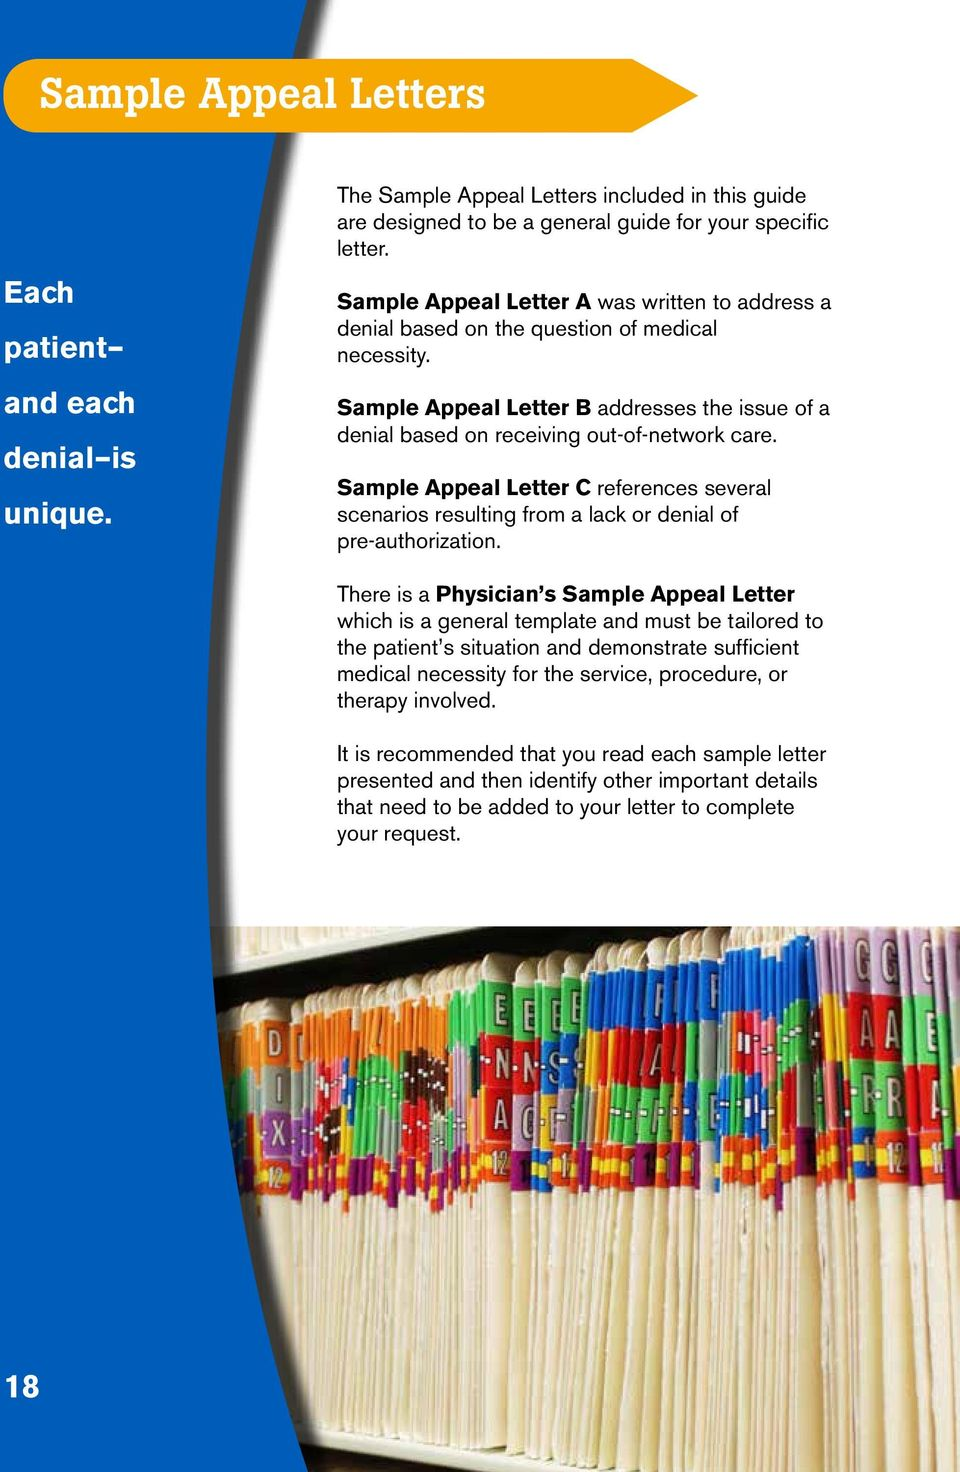 Sample Appeal Letter C references several scenarios resulting from a lack or denial of pre-authorization.